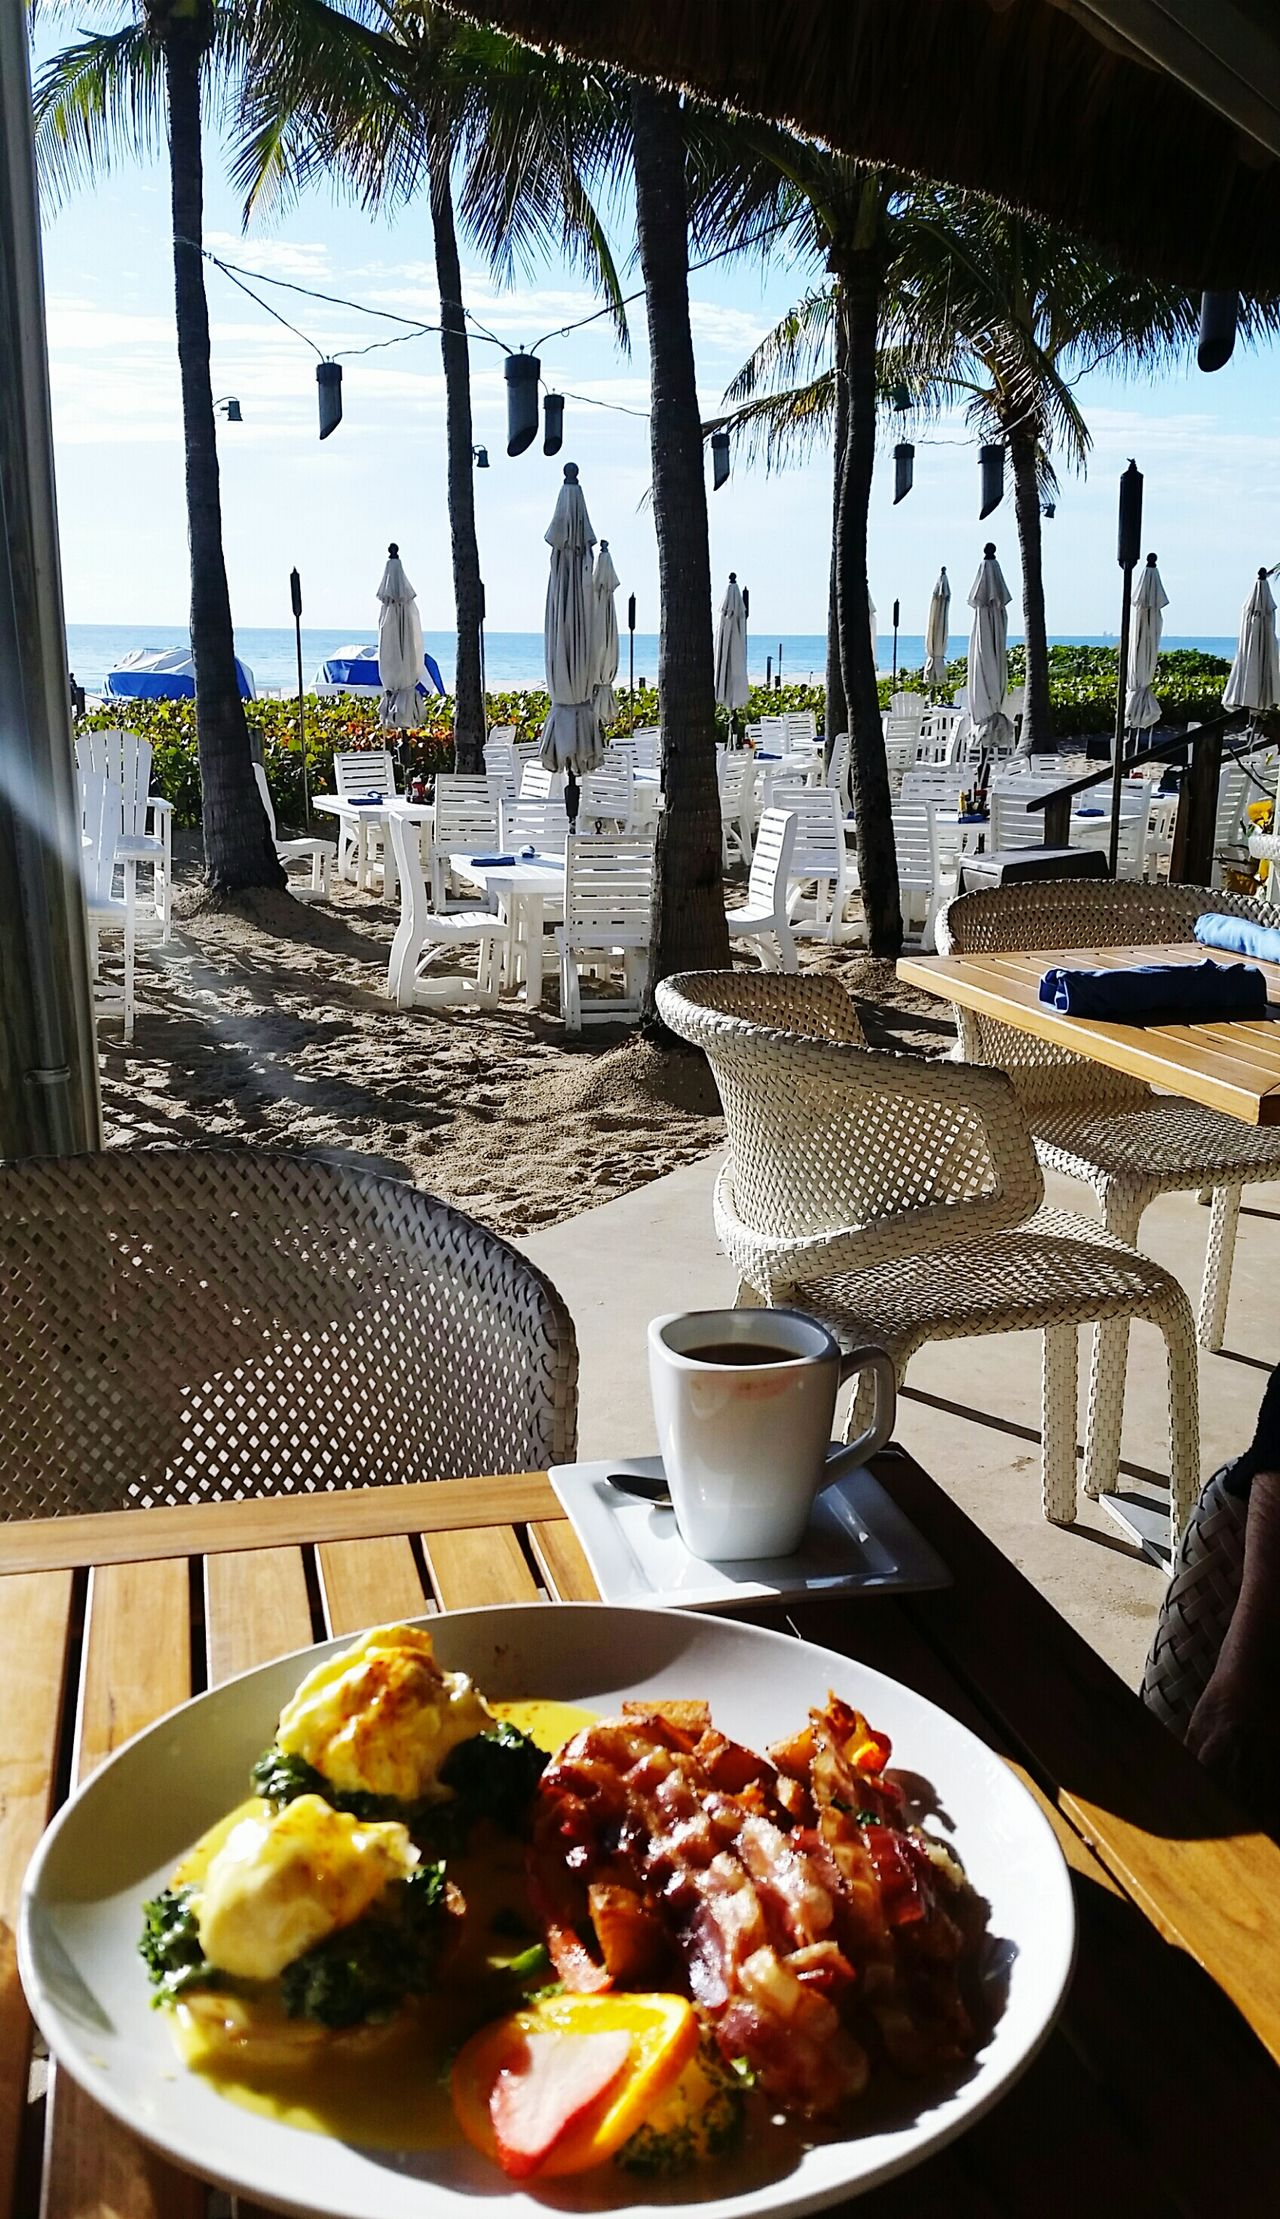 Table No People Vacations Food And Drink Tree Water Plate Drink Day Beach Outdoors Oceanside Breakfast Al Fresco Eggs Benedict